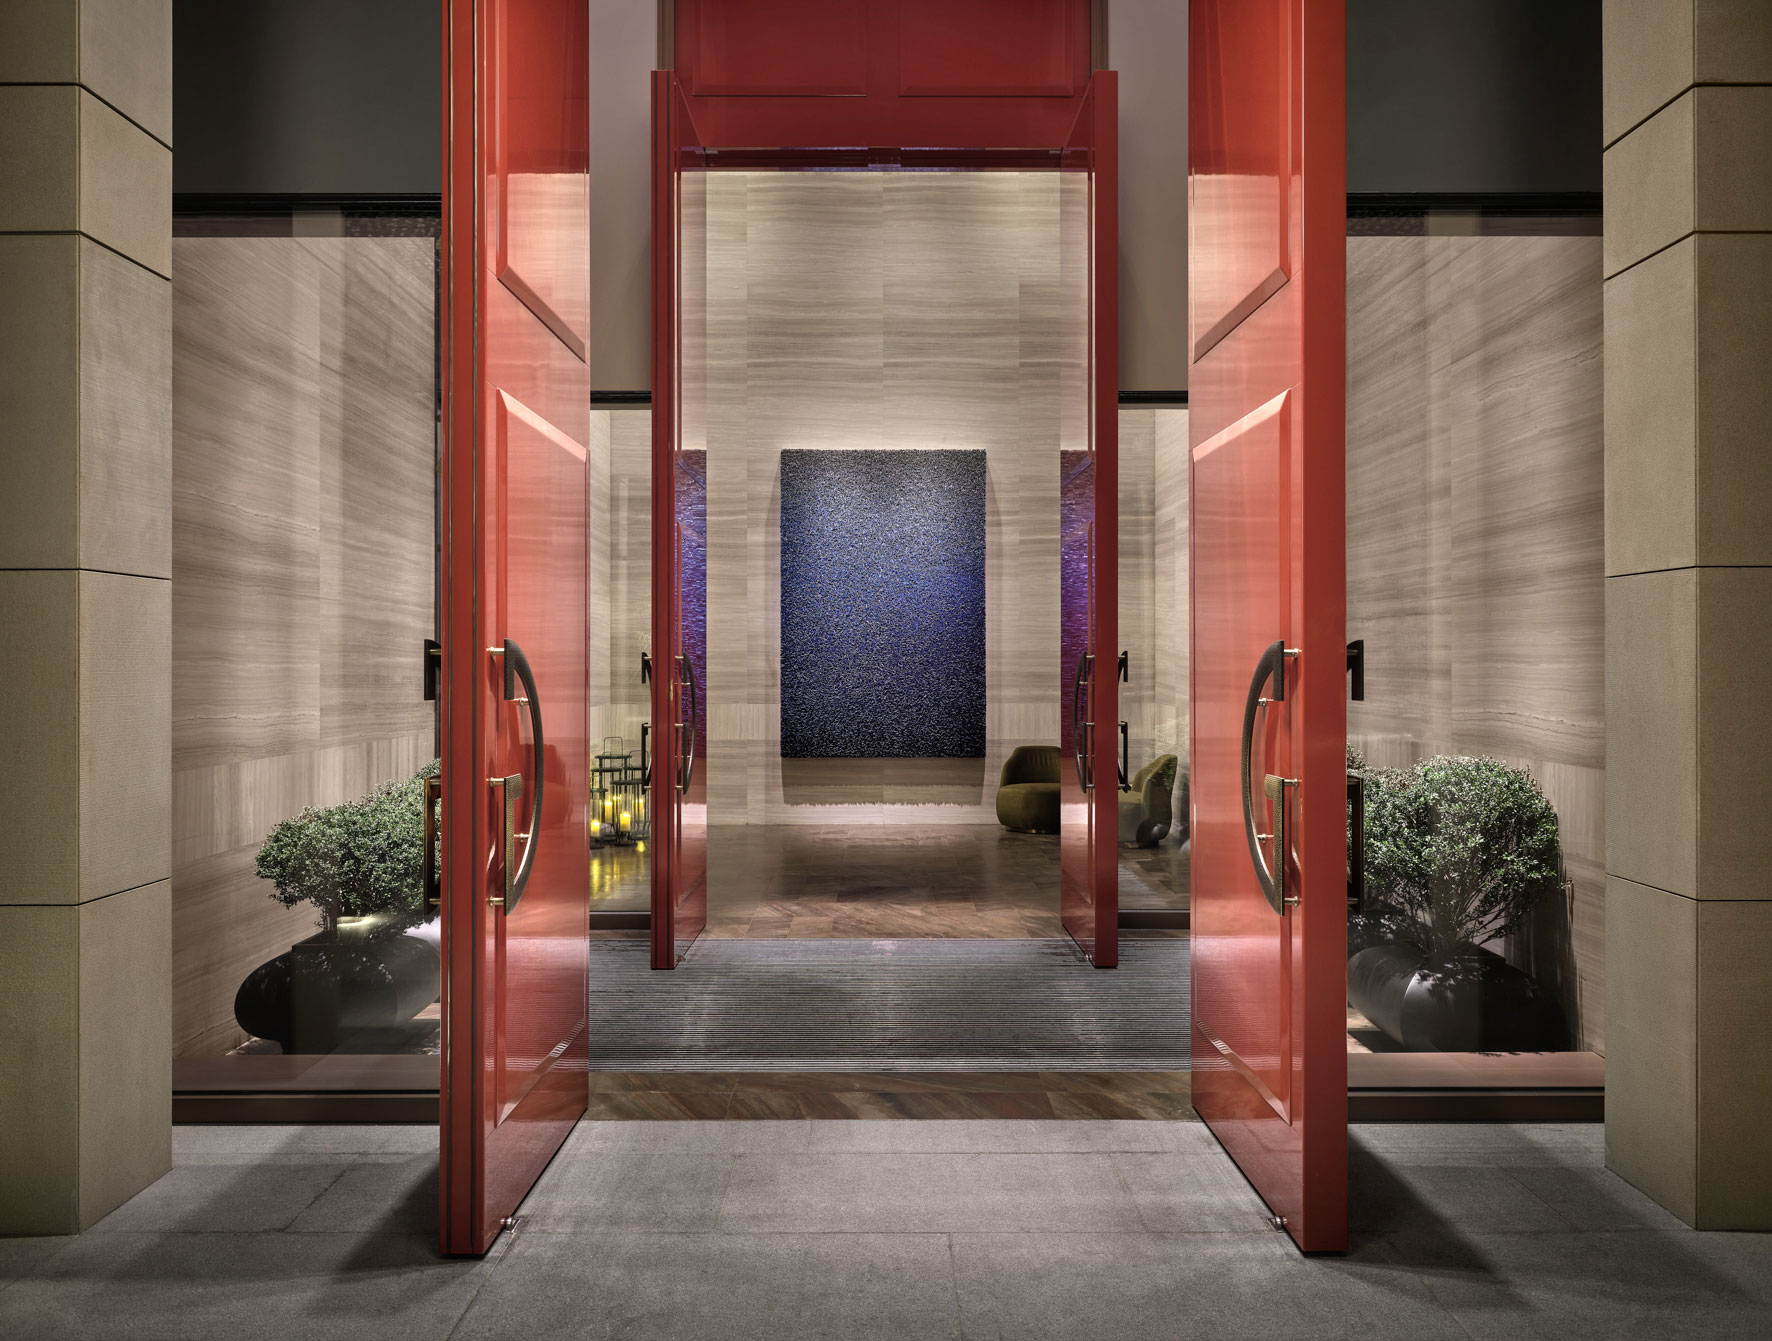 Rosewood Hotel Guangzhou, China. Architectural photographer Asia